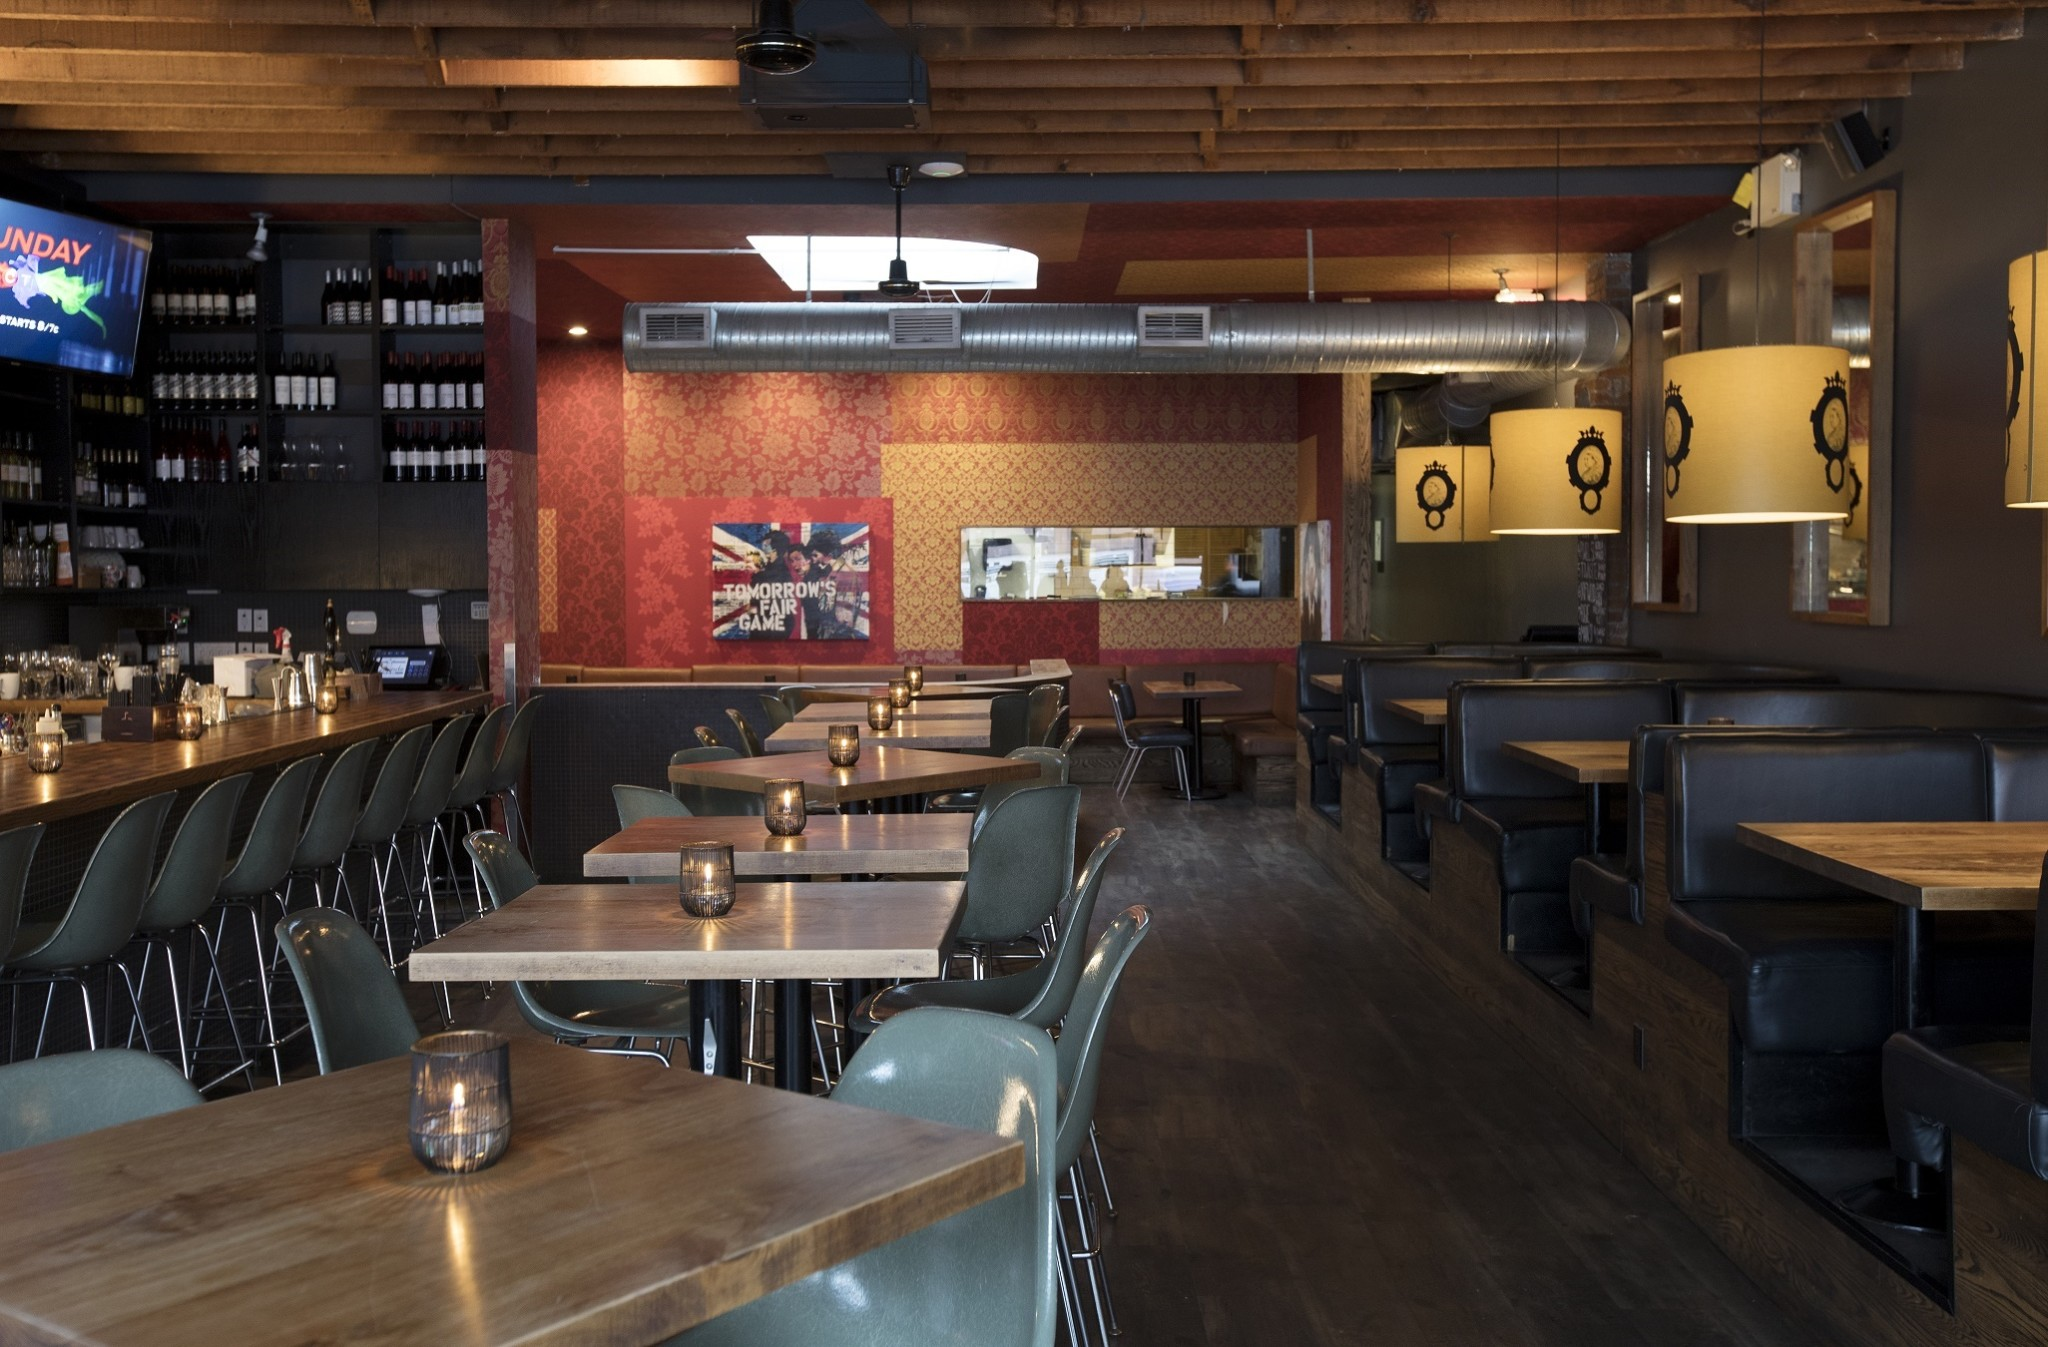 Dine Out Vancouver at The Cascade Room, January 20 – February 5